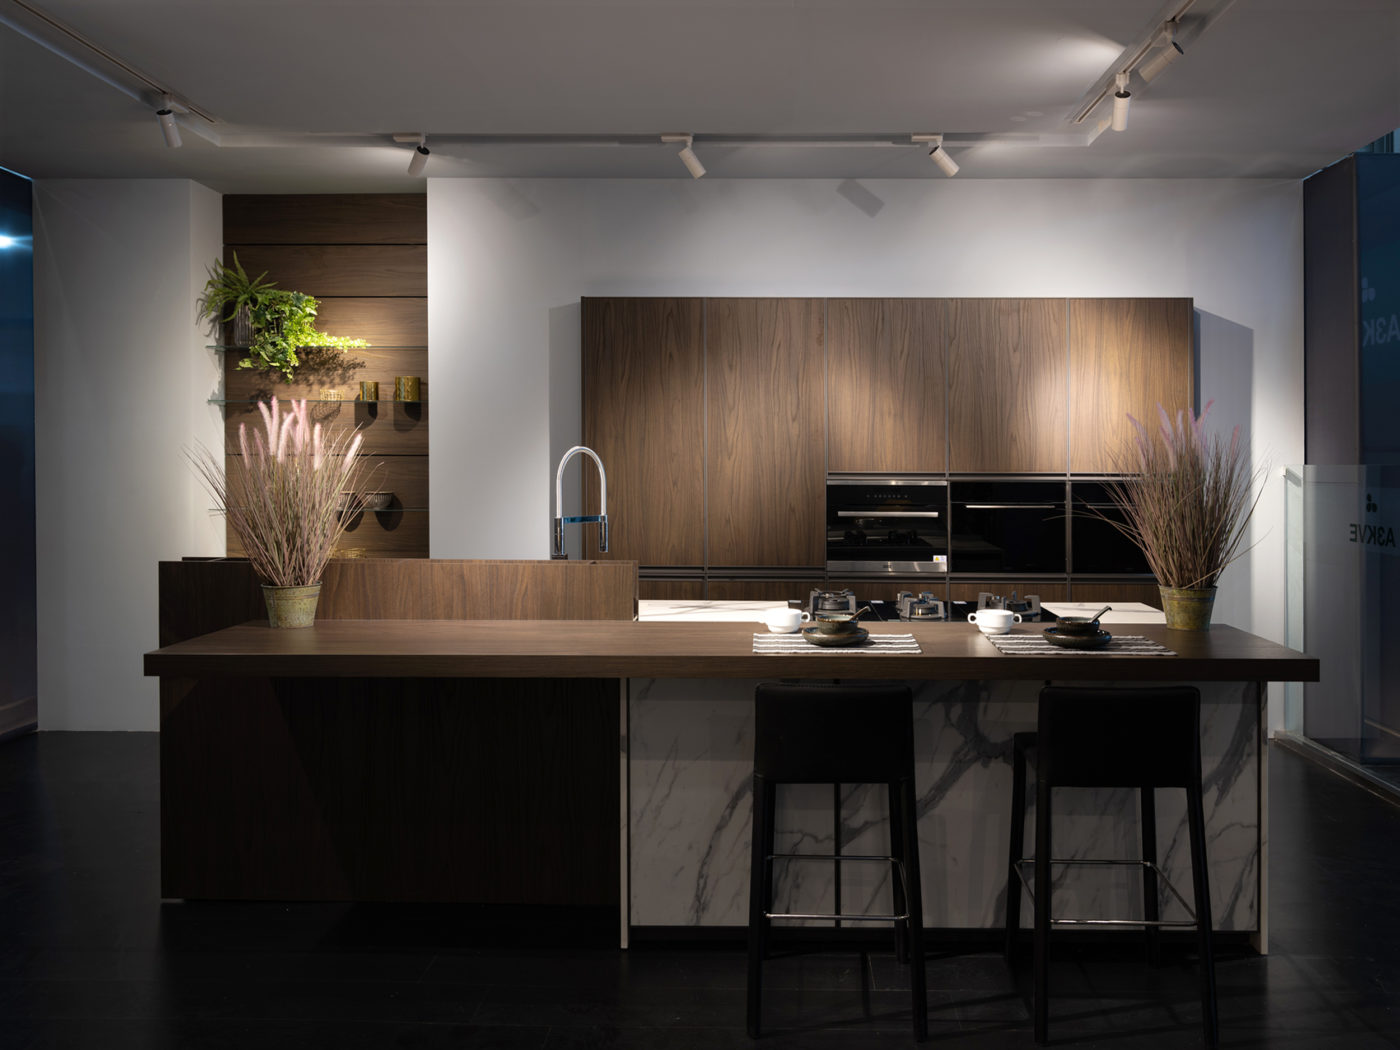 Grand succès pour Arredo3 au Kitchen & Bath 2019 Chine - 3